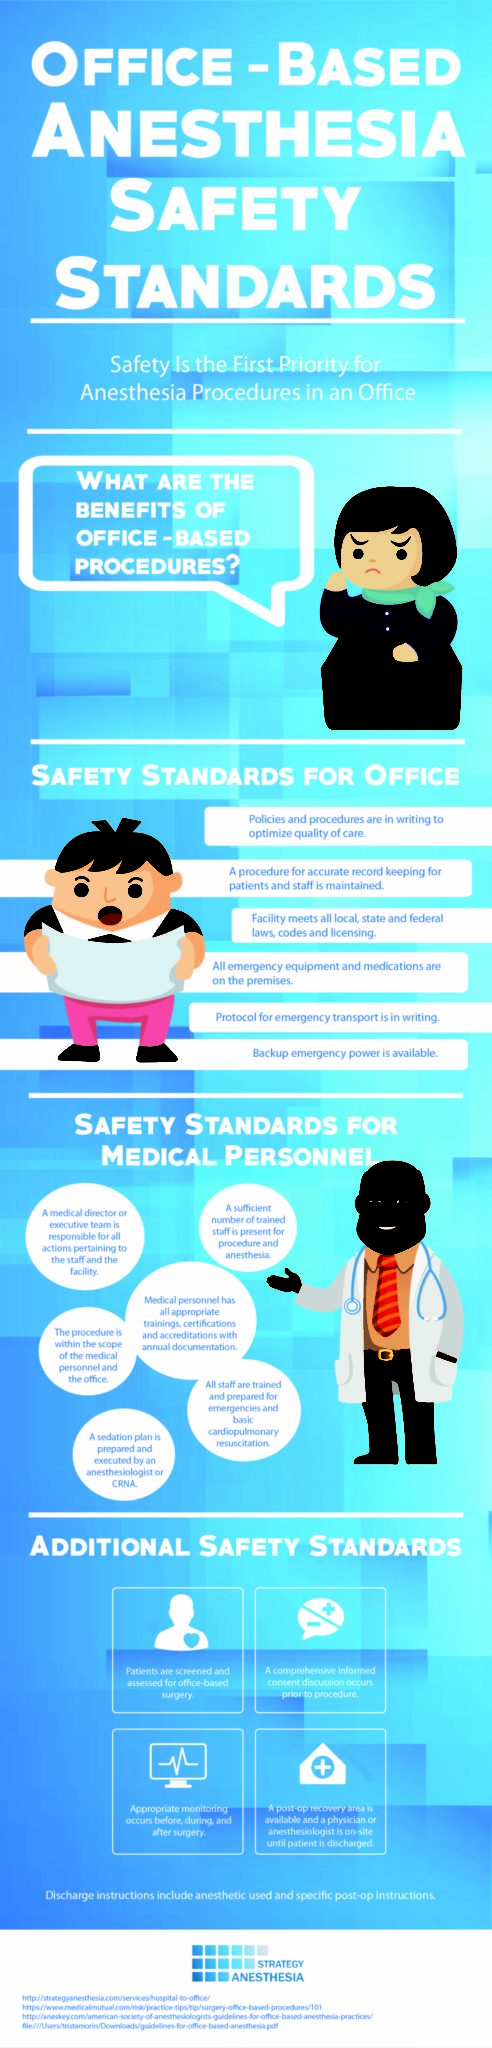 Office Based Anesthesia Safety Standards